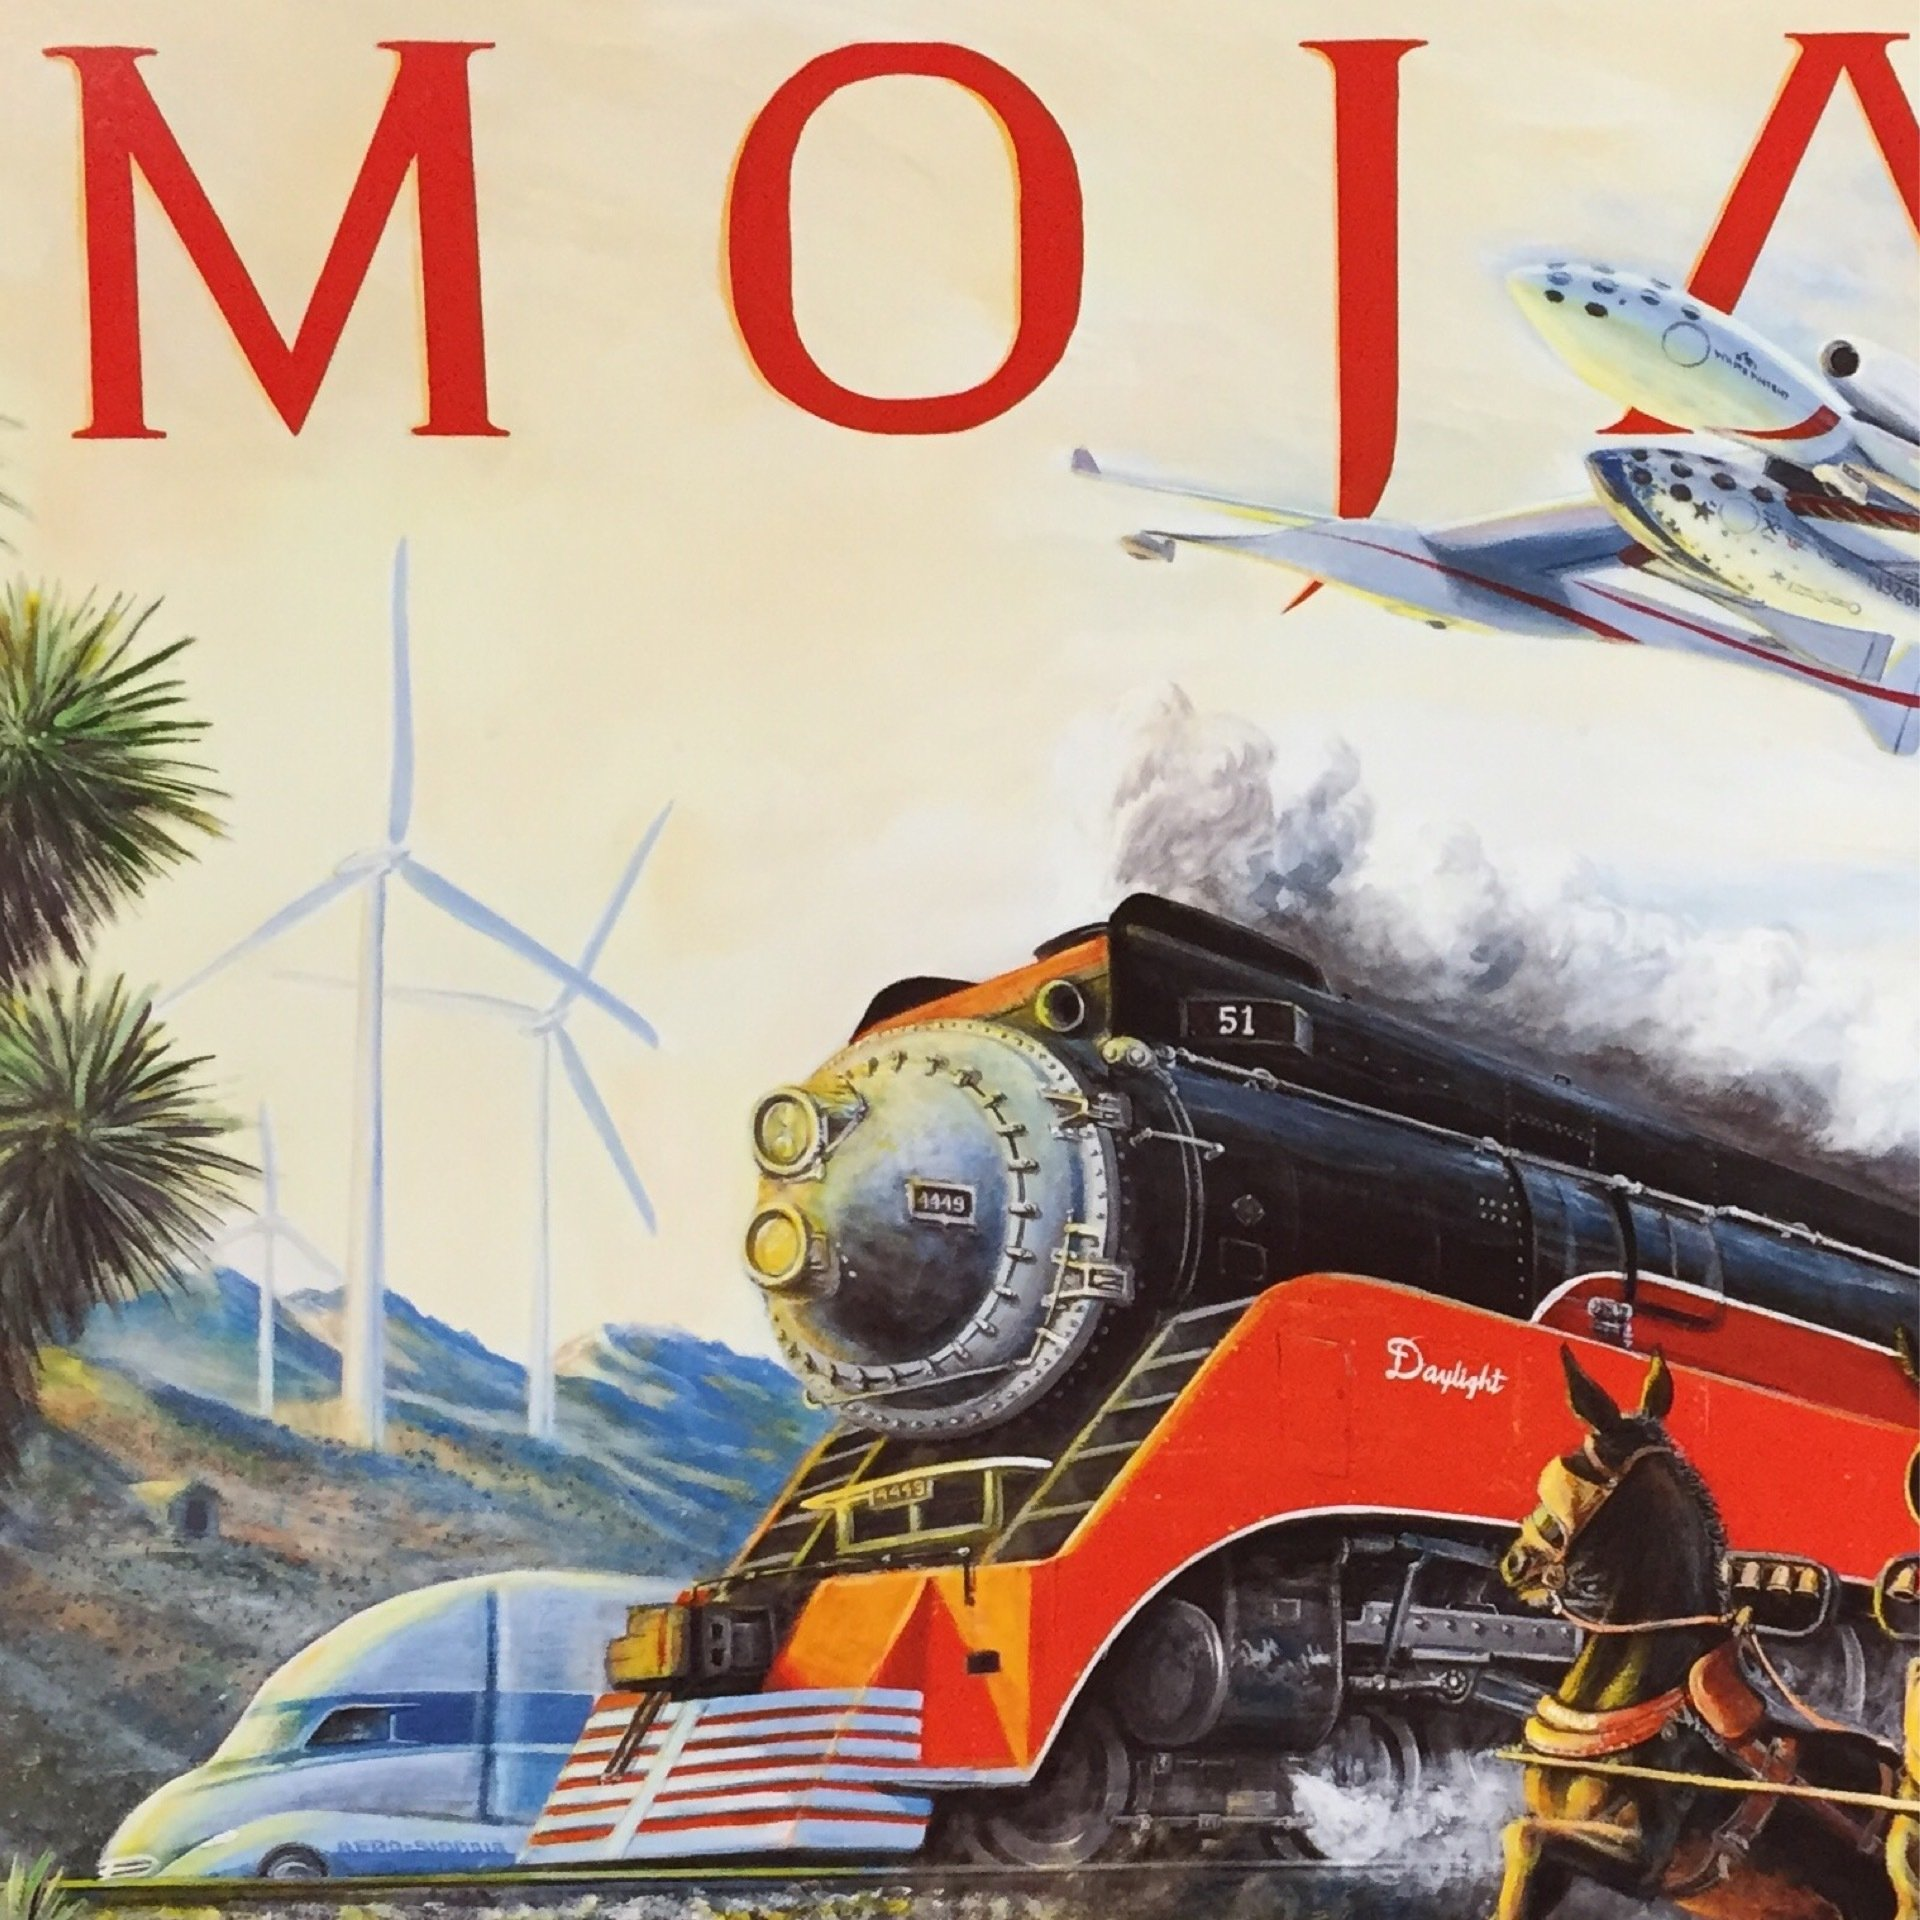 Mojave Mural Poster FB45840A-1A66-4031-897D-957DCEED4438